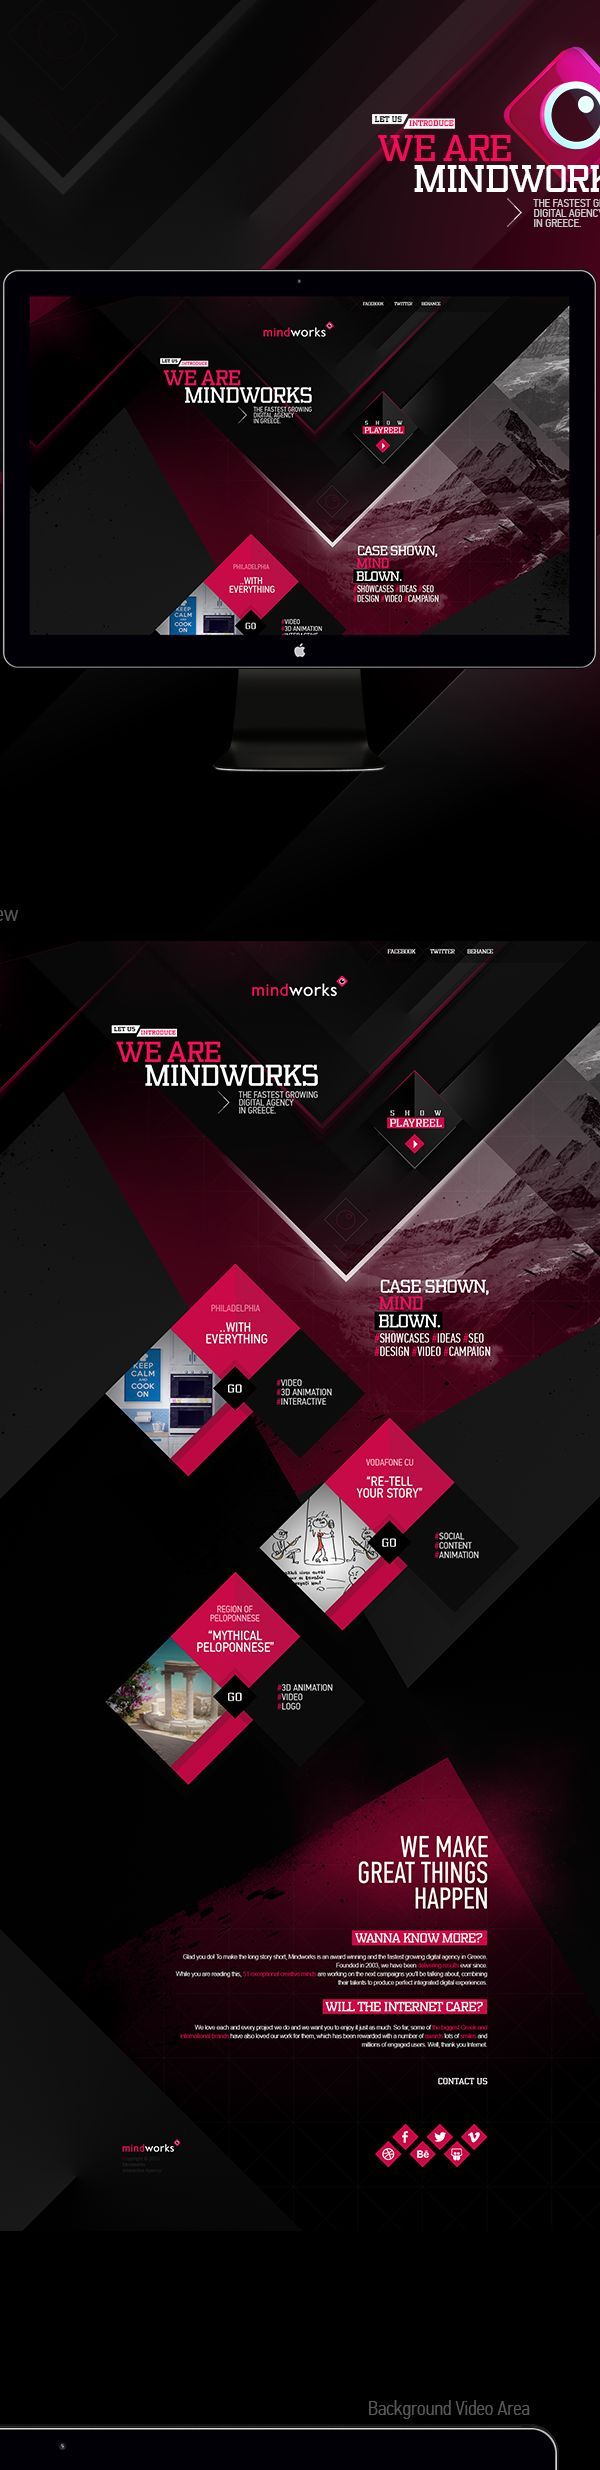 Mindworks New Website by Mike Polizos, via Behance #WebDesign #ResponsiveDesign #Design #Web #UI #UX #GUI #mobille #Amazing #Responsive